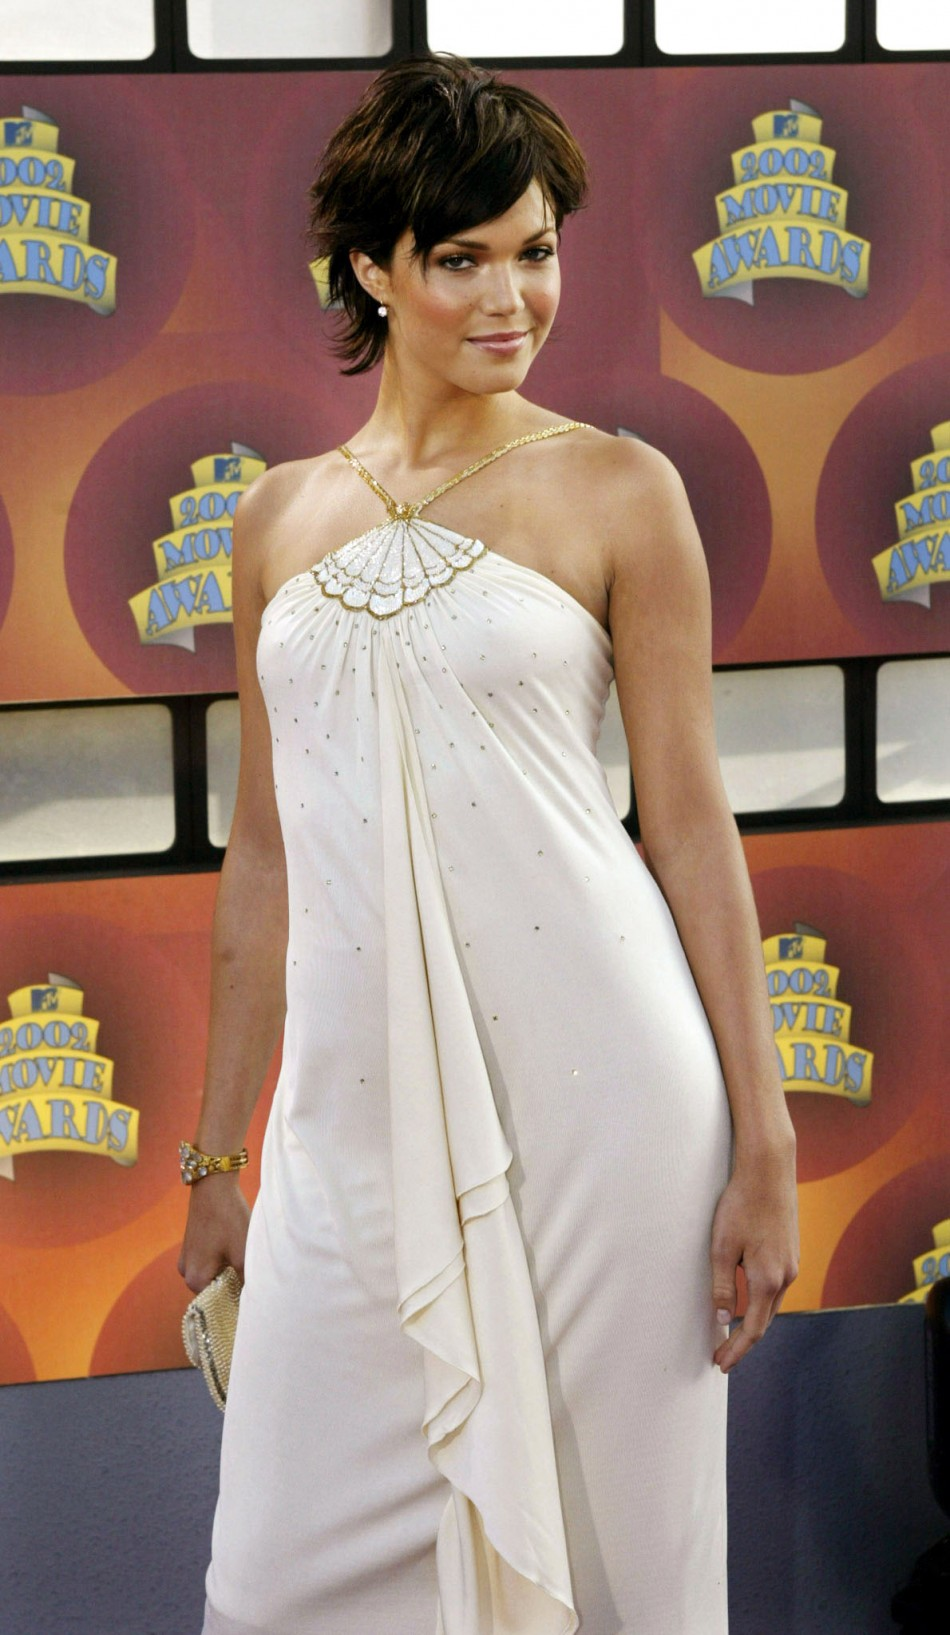 Actress Mandy Moore poses for photos after arriving at the 2002 MTV Movie Awards on June 1, 2002 in Los Angeles, California. Moore was awarded Breakthrough Performance Female for her role in